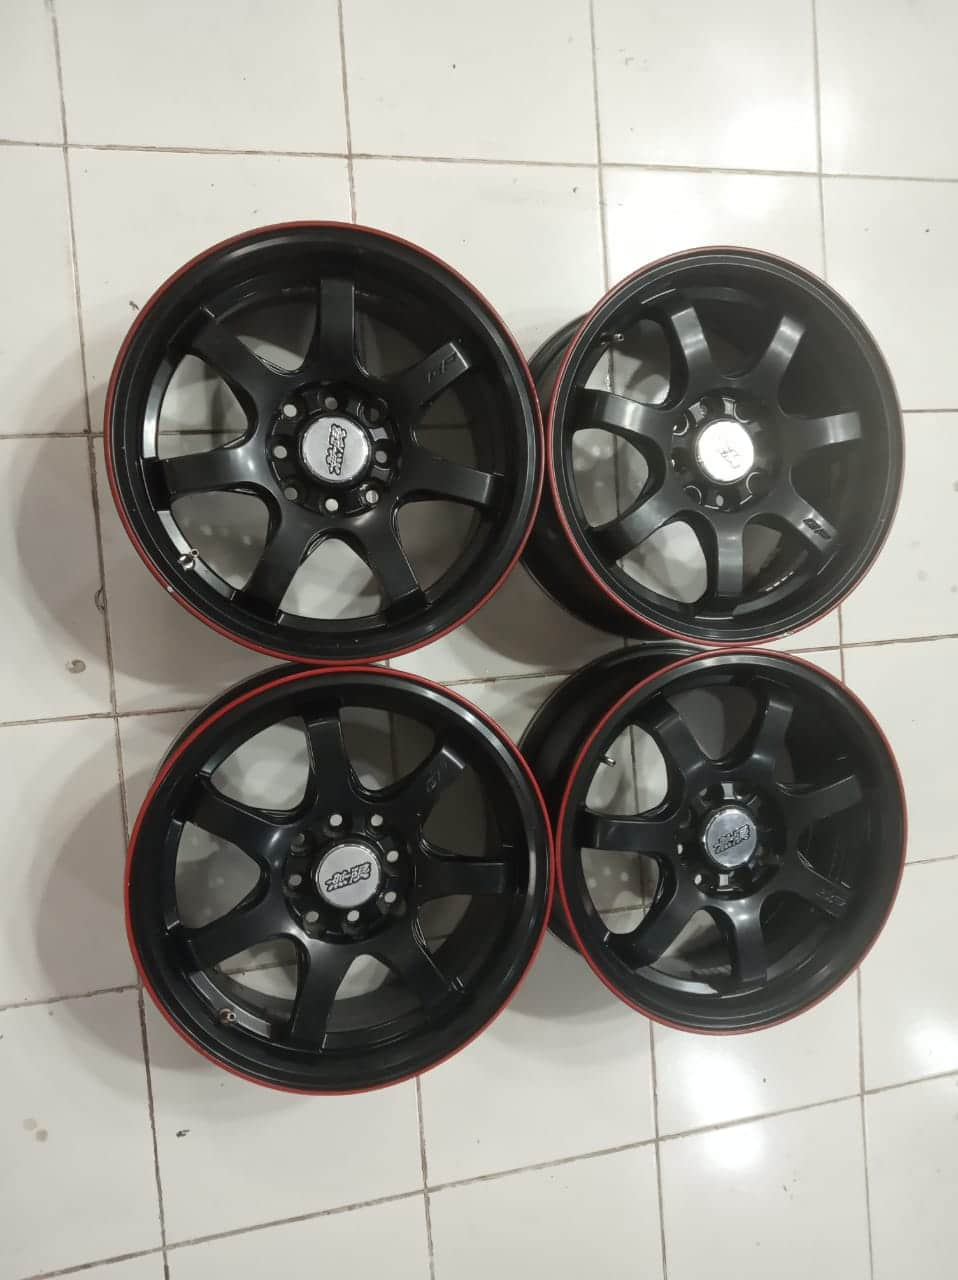 read velg seken model TE37 Ring 15X6,5 pcd 8X100-114,3 et40 hitam